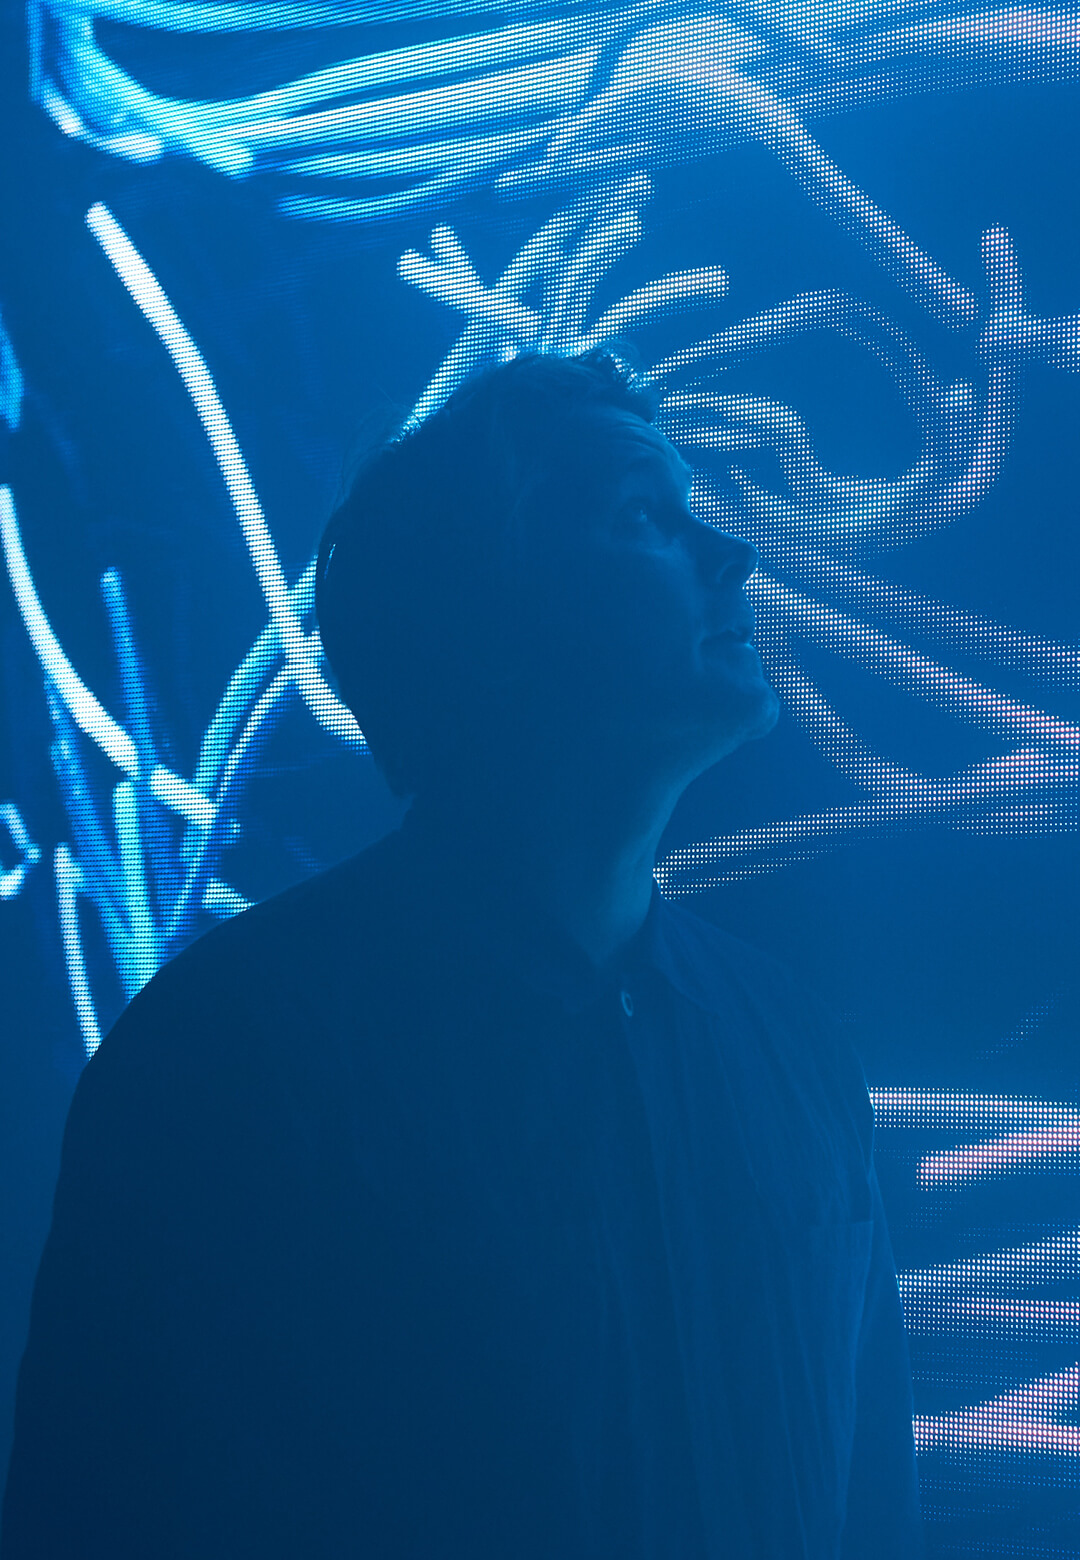 Smith & Lyall, show directors for The Chemical Brothers inside Got To Keep On (2019), an installation by The Chemical Brothers and Smith & Lyall | Electronic: From Kraftwerk to The Chemical Brothers | STIRworld